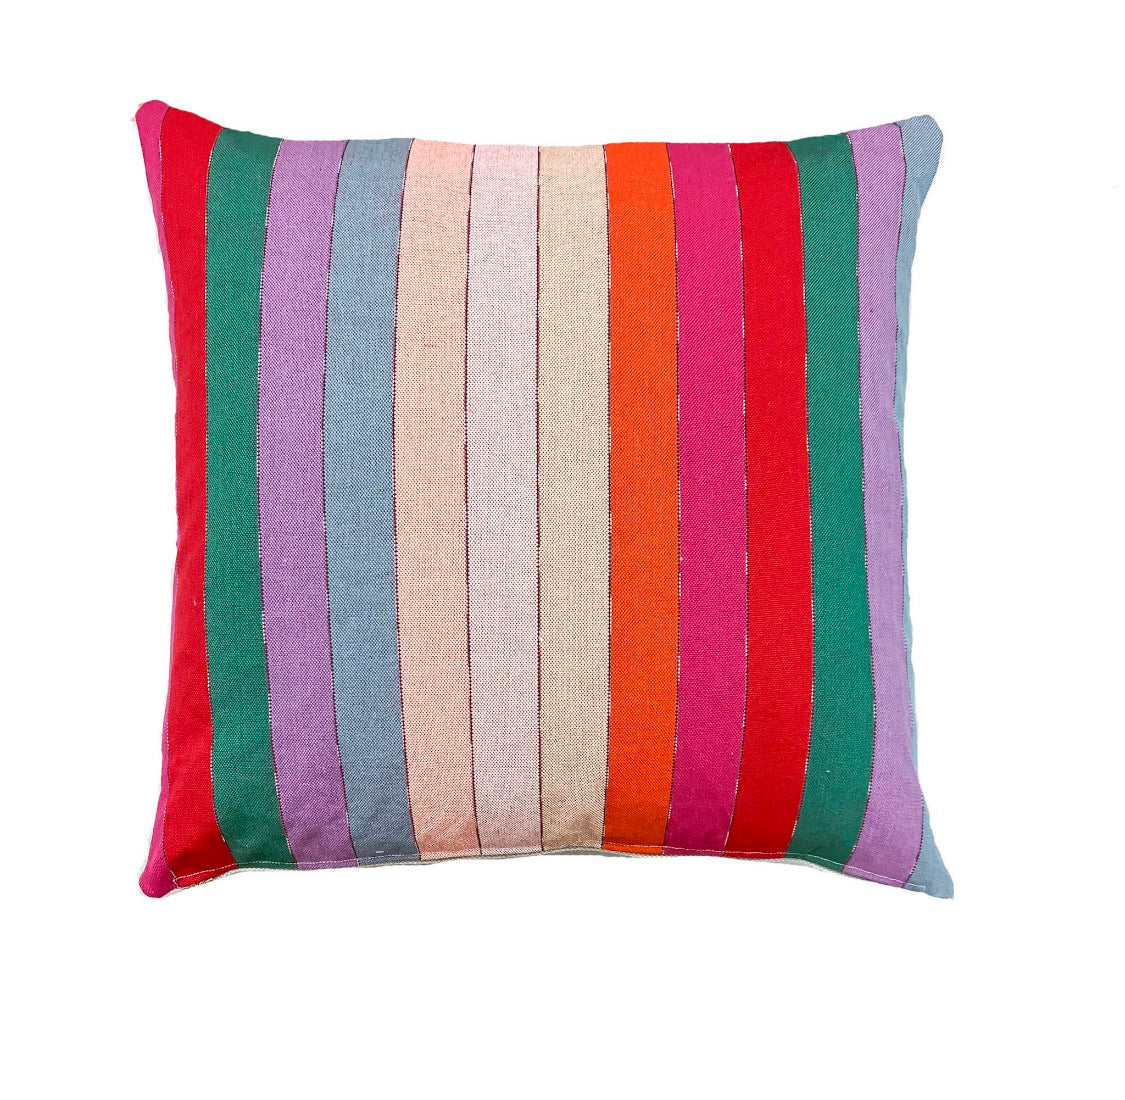 Multi-color Lucy pillow cover - Studio Pillows